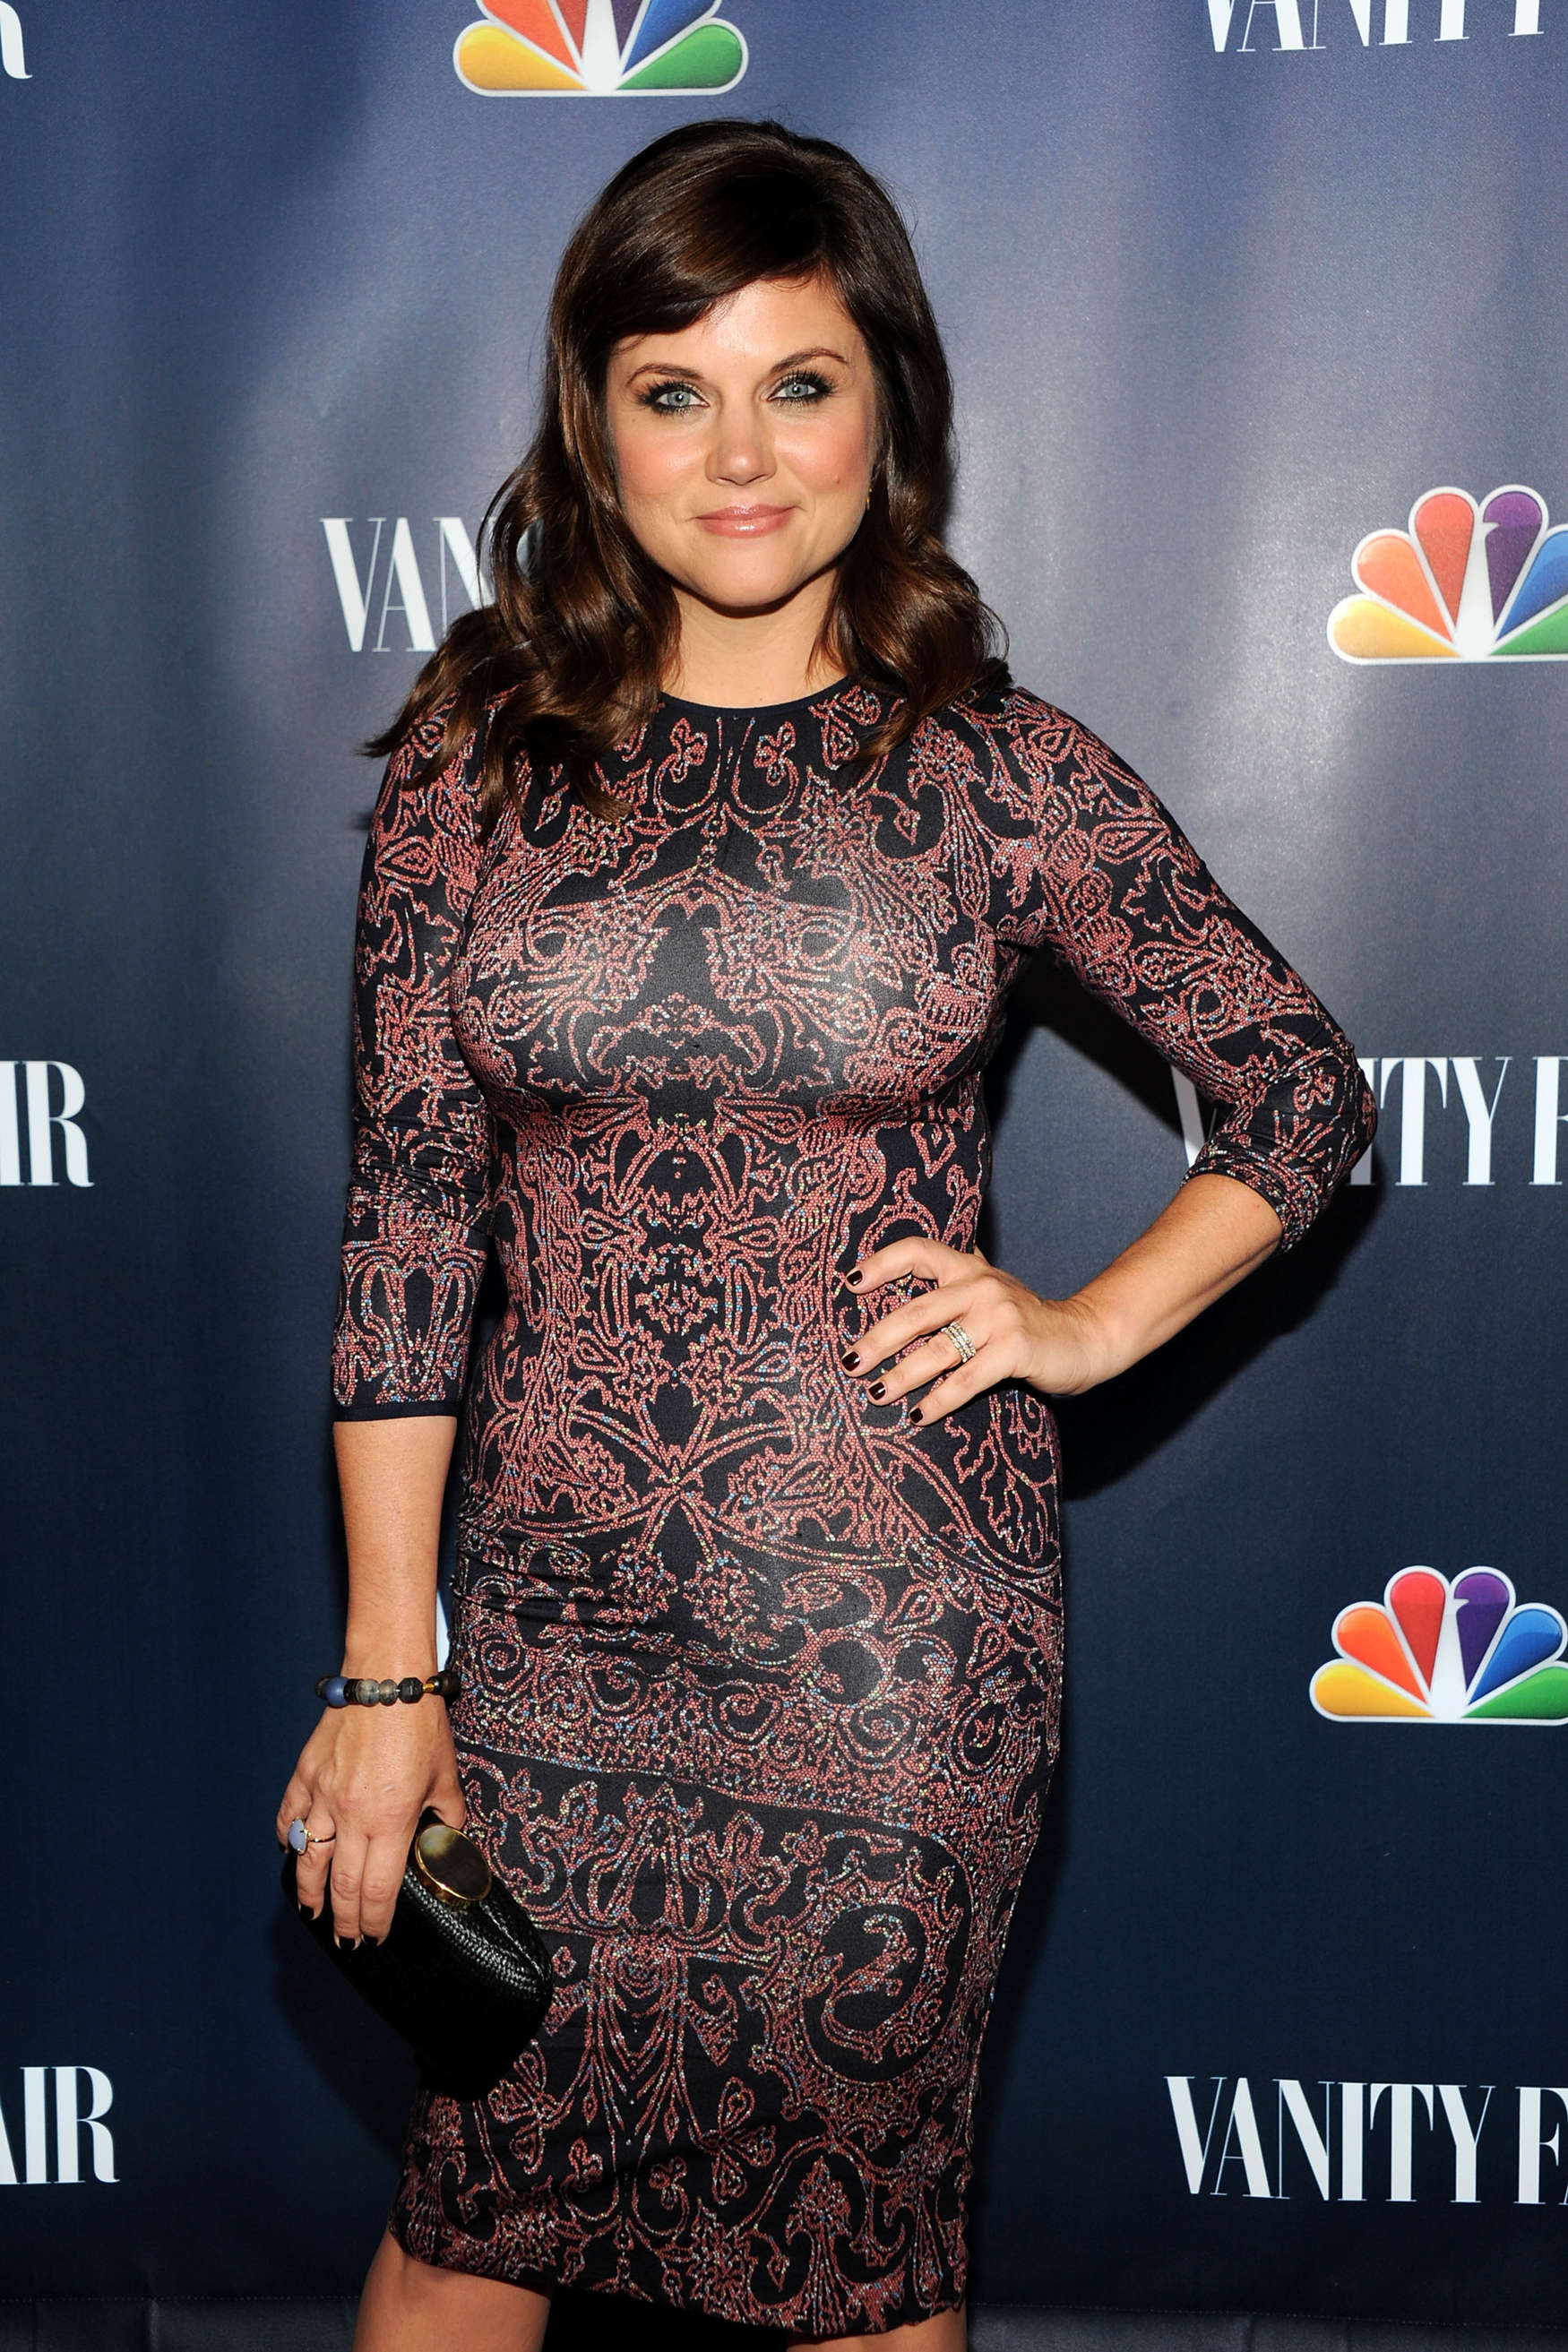 Tiffani Thiessen at Vanity Fair NBCs Fall Launch Party